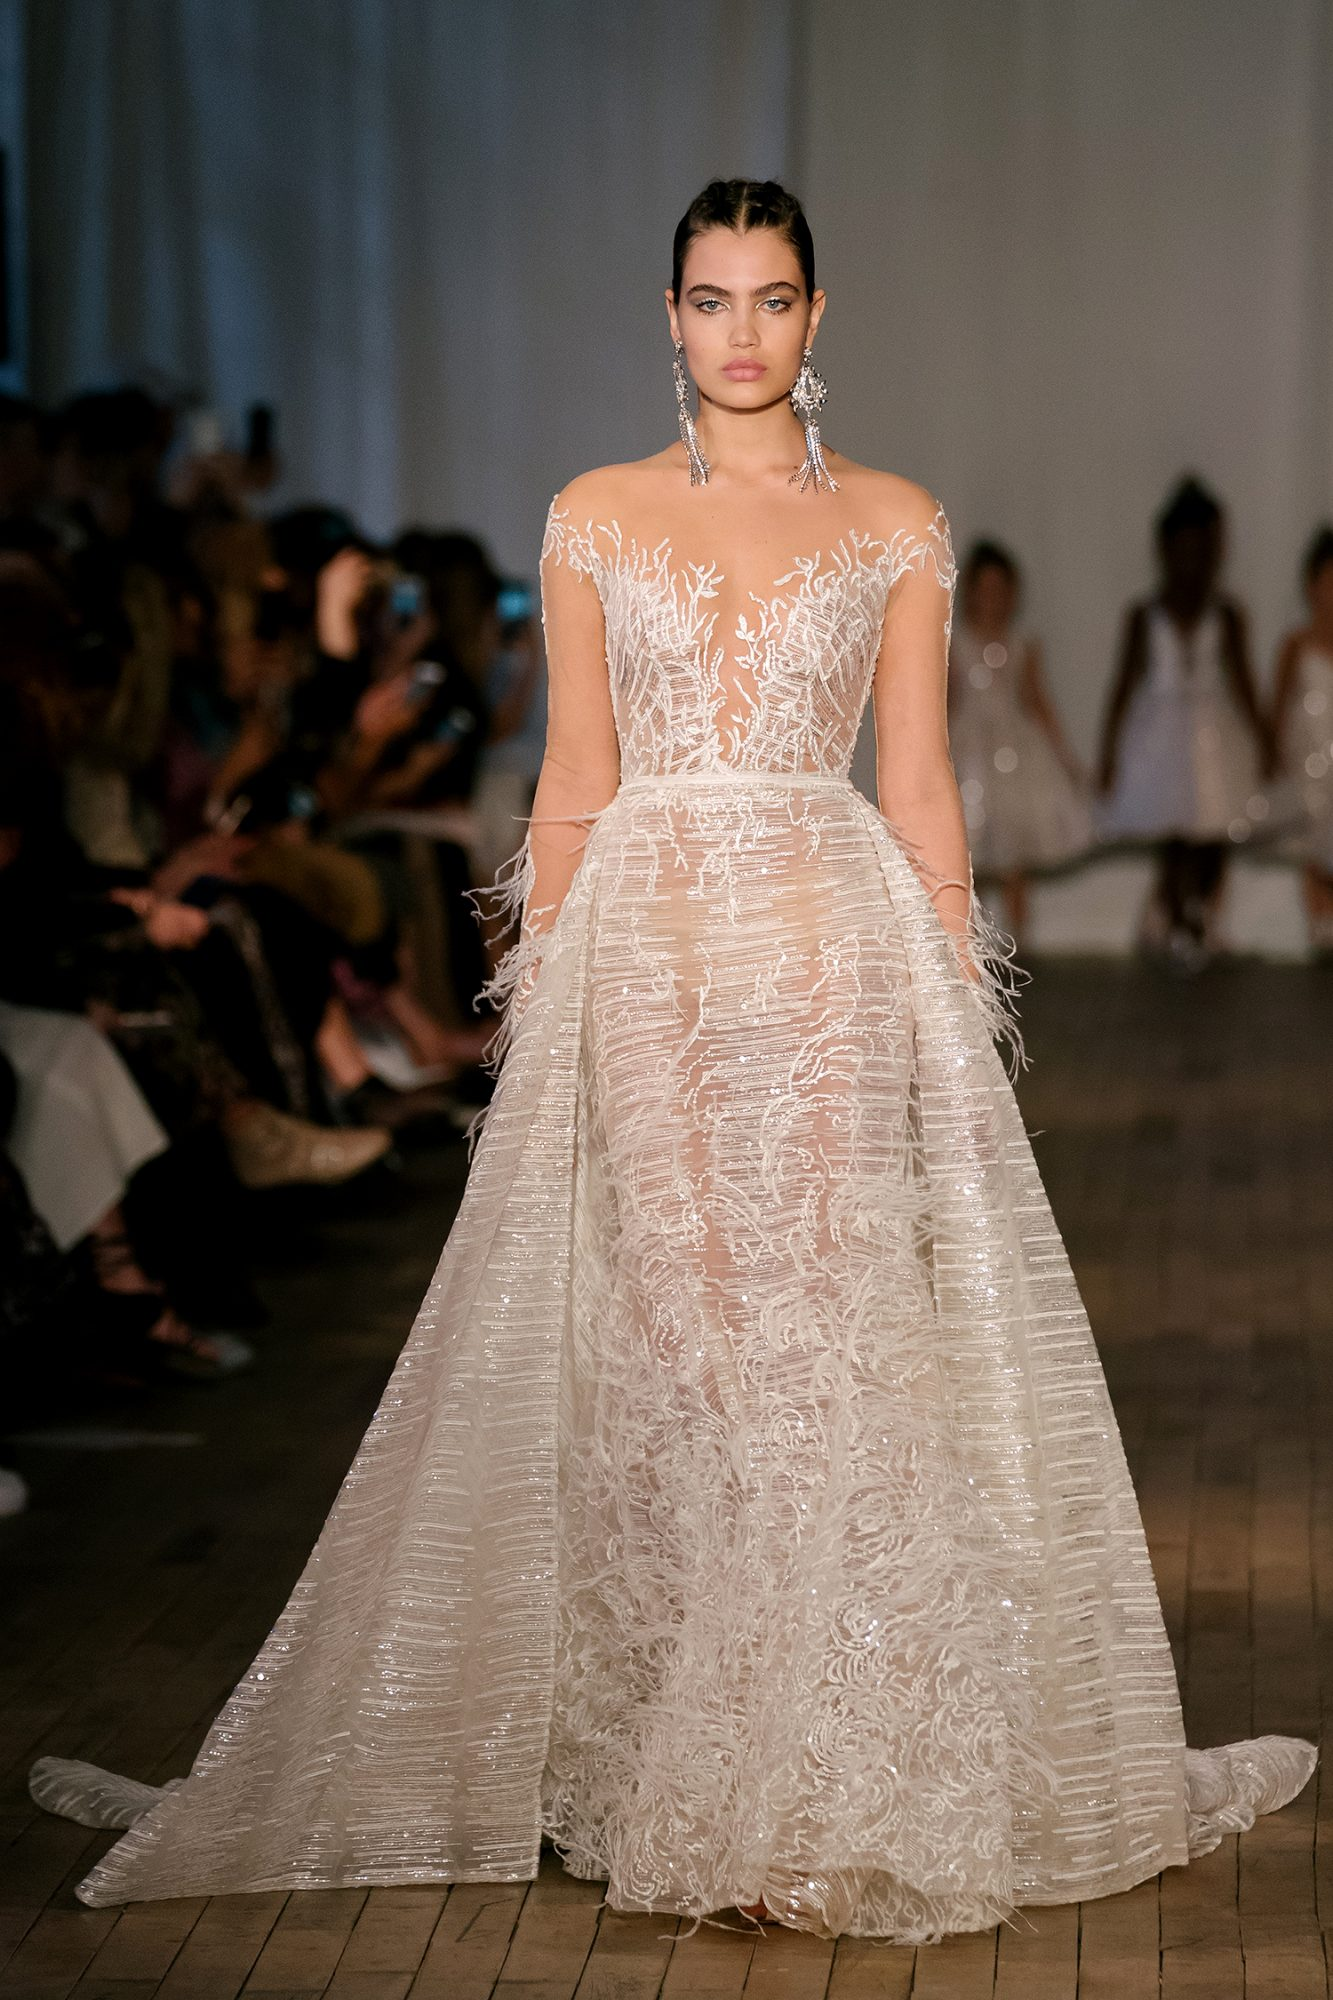 berta wedding dress spring 2019 illusion neck long-sleeved details